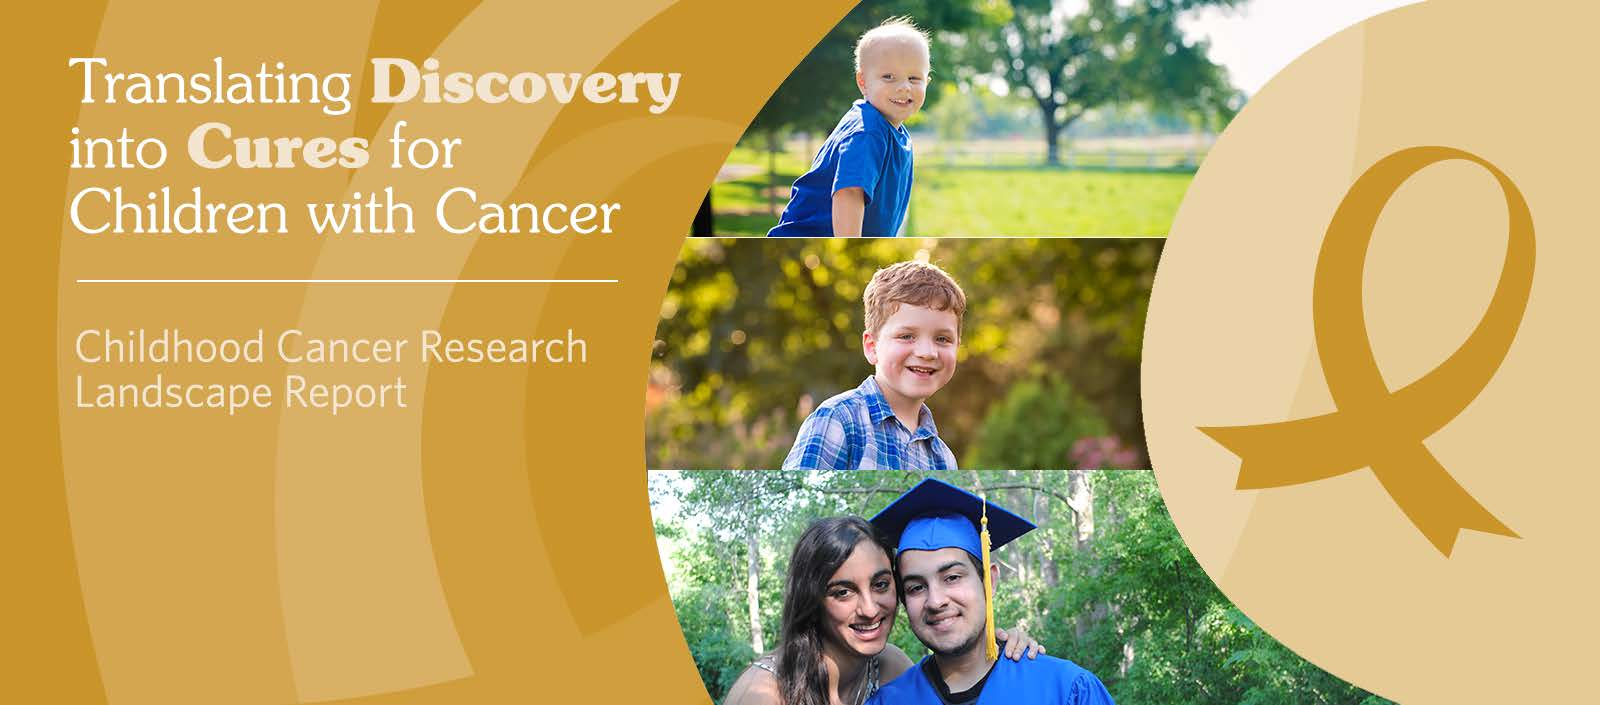 Translating Discovery into Cures for  Children with Cancer